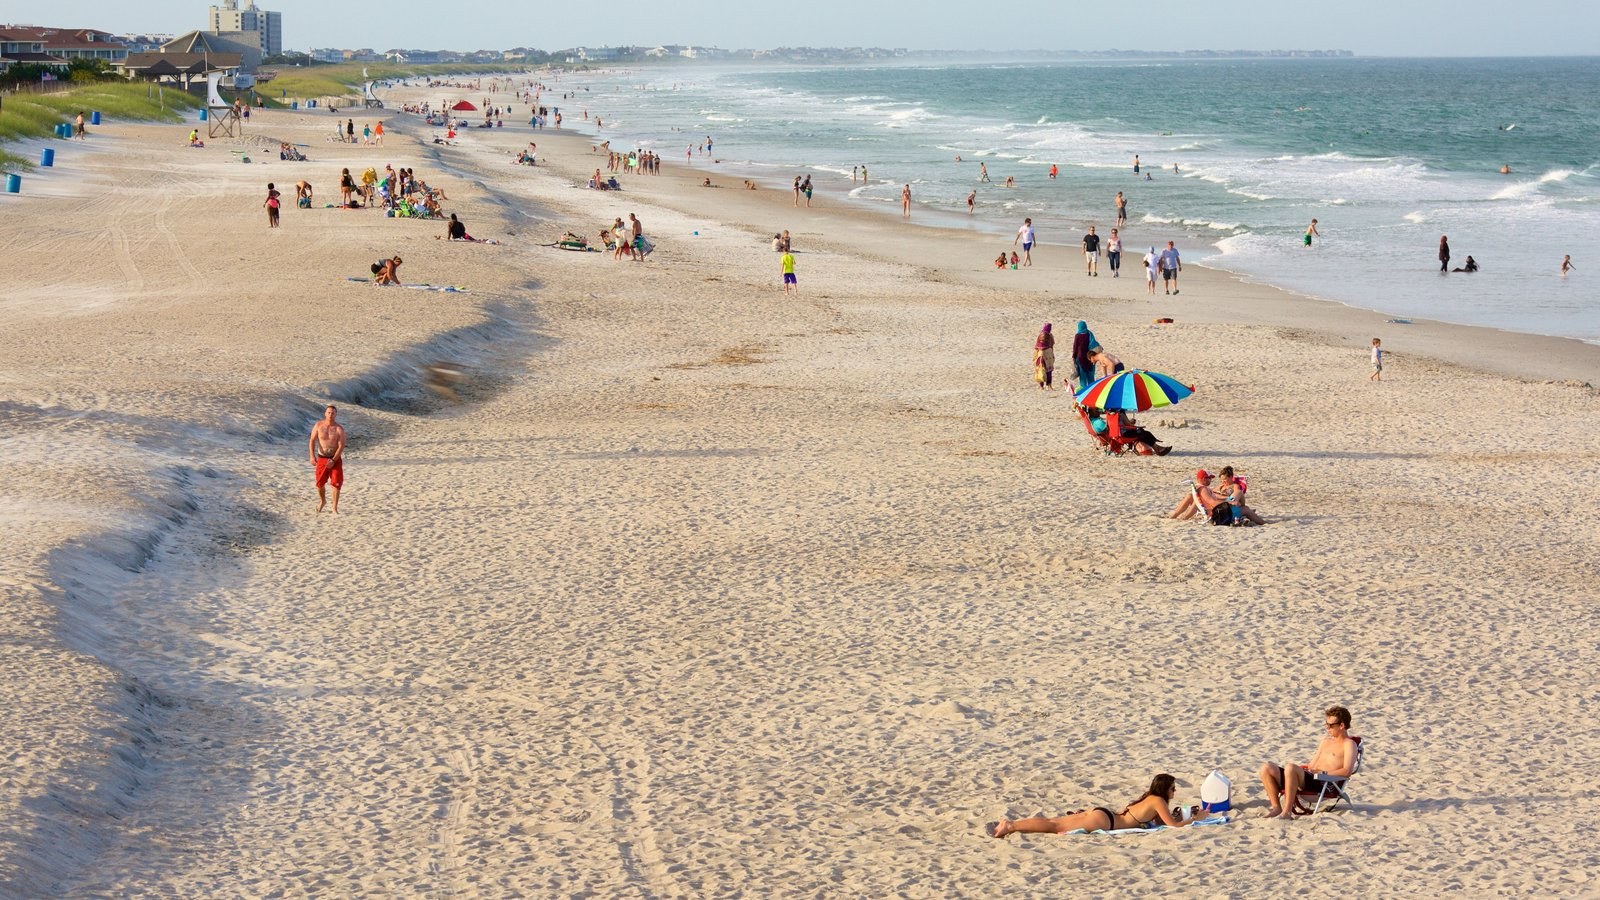 Wrightsville Beach which includes general coastal views and a sandy beach as well as a large group of people